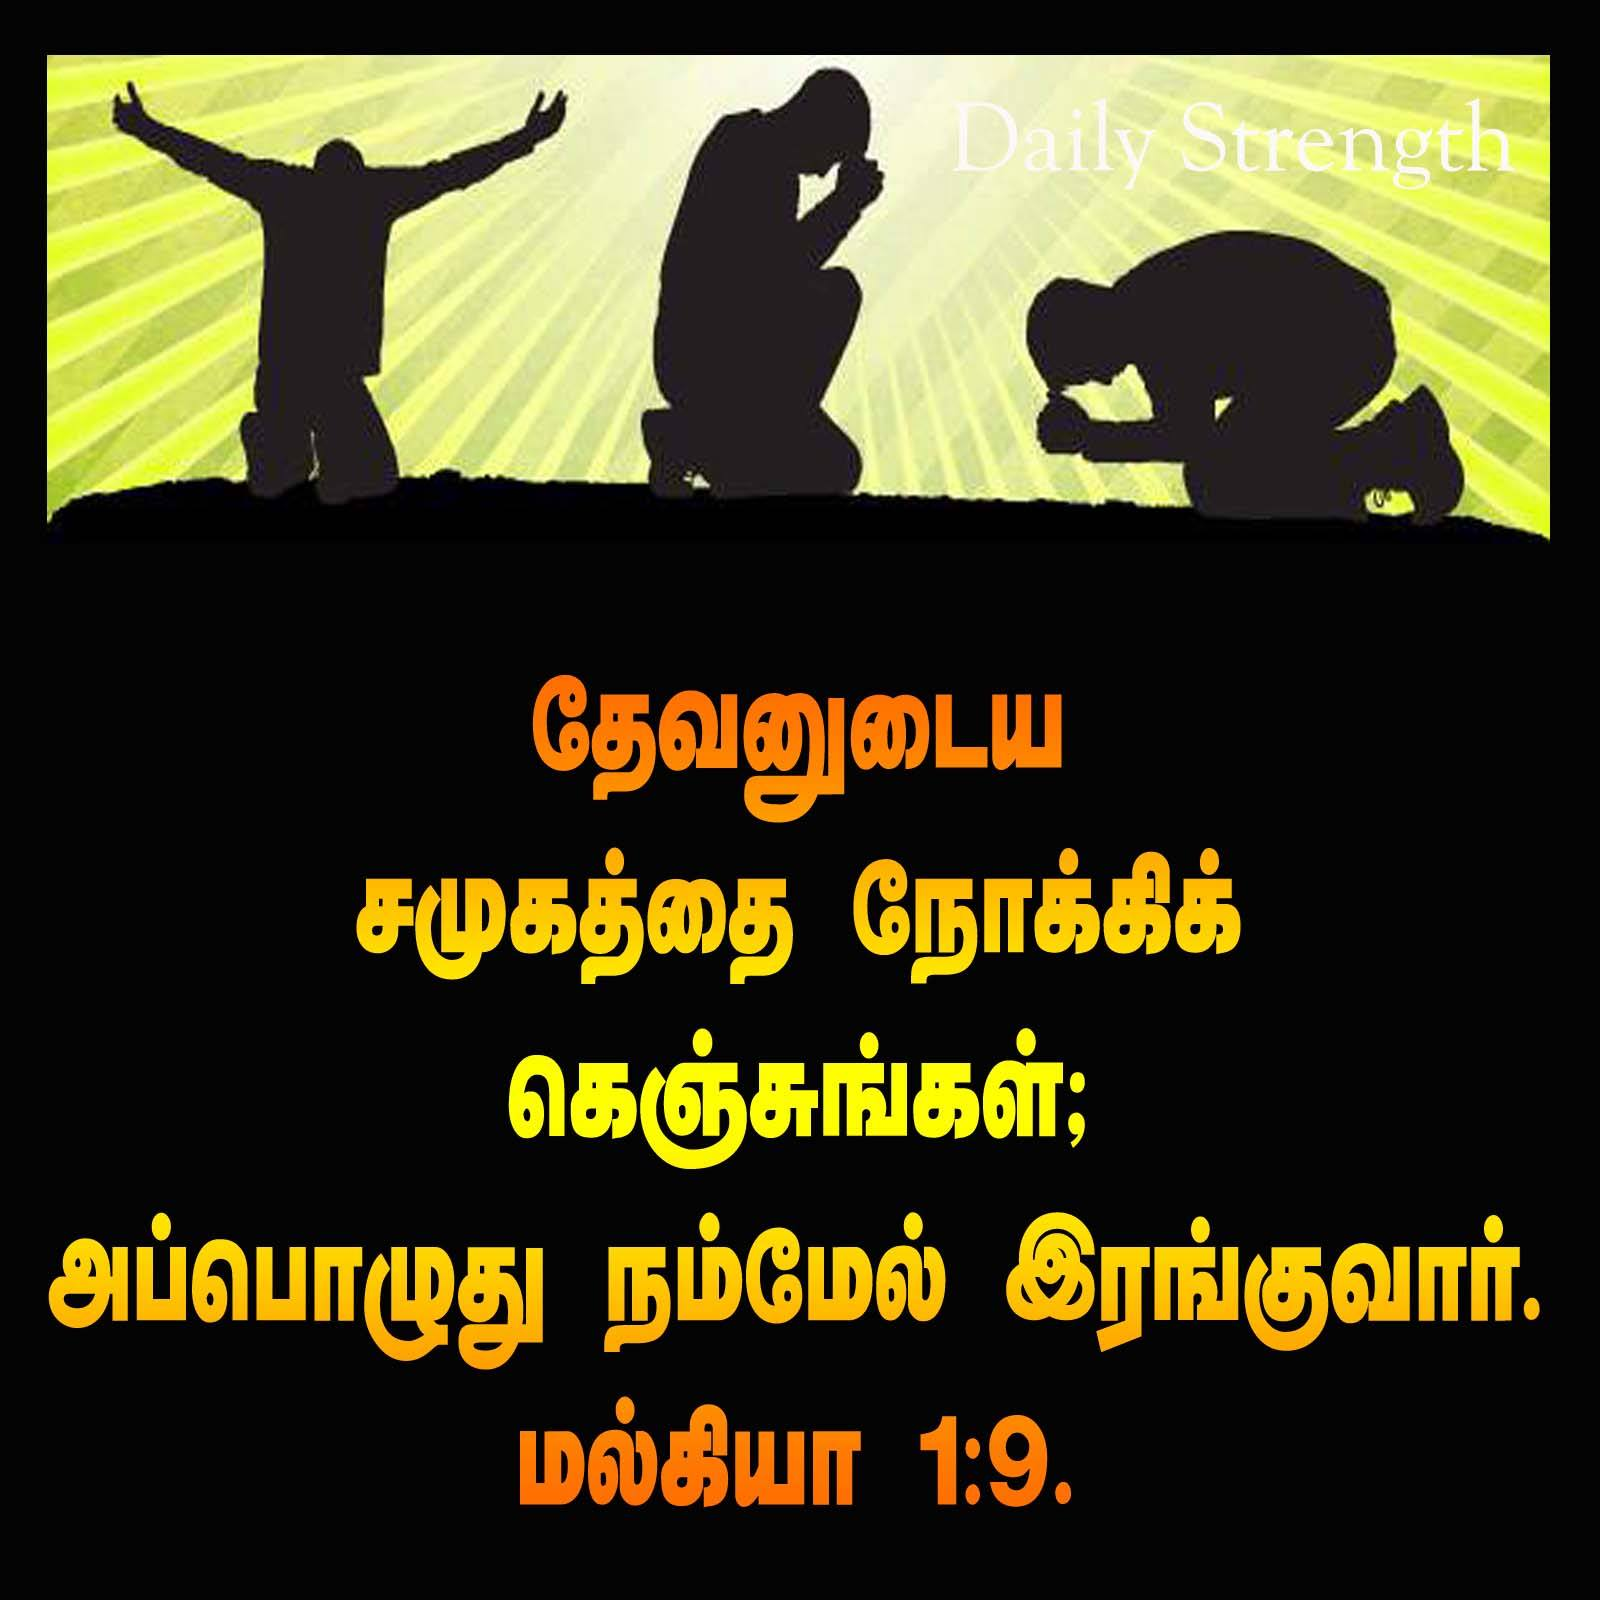 45 Tamil Christian Wallpapers By Daily Strength Free Christian Resources